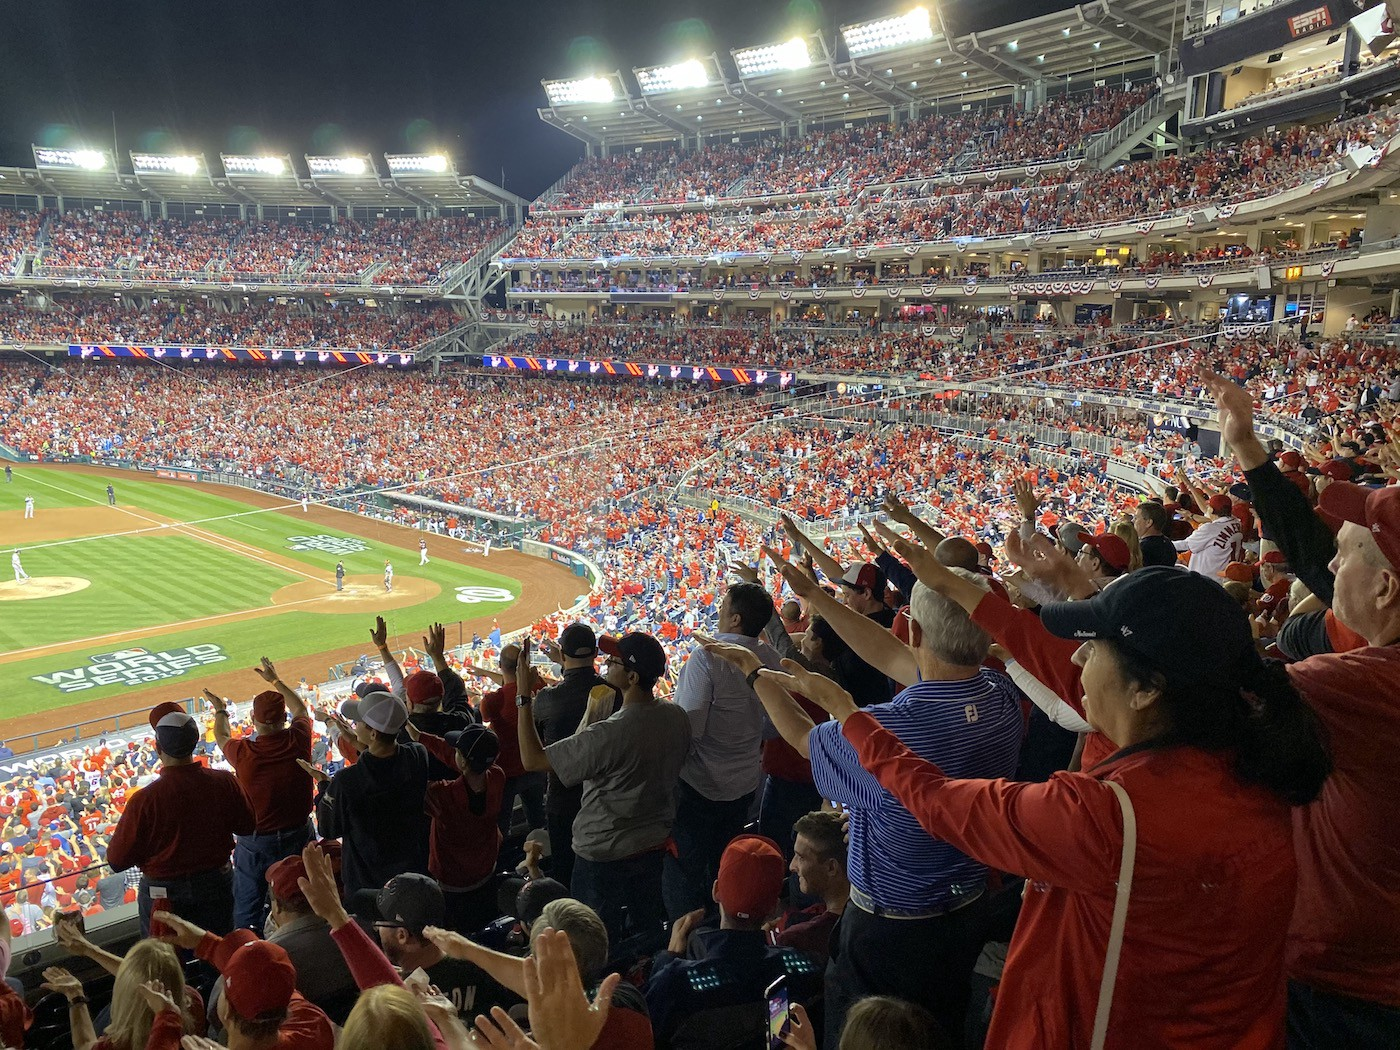 World Series Game at Nationals Park